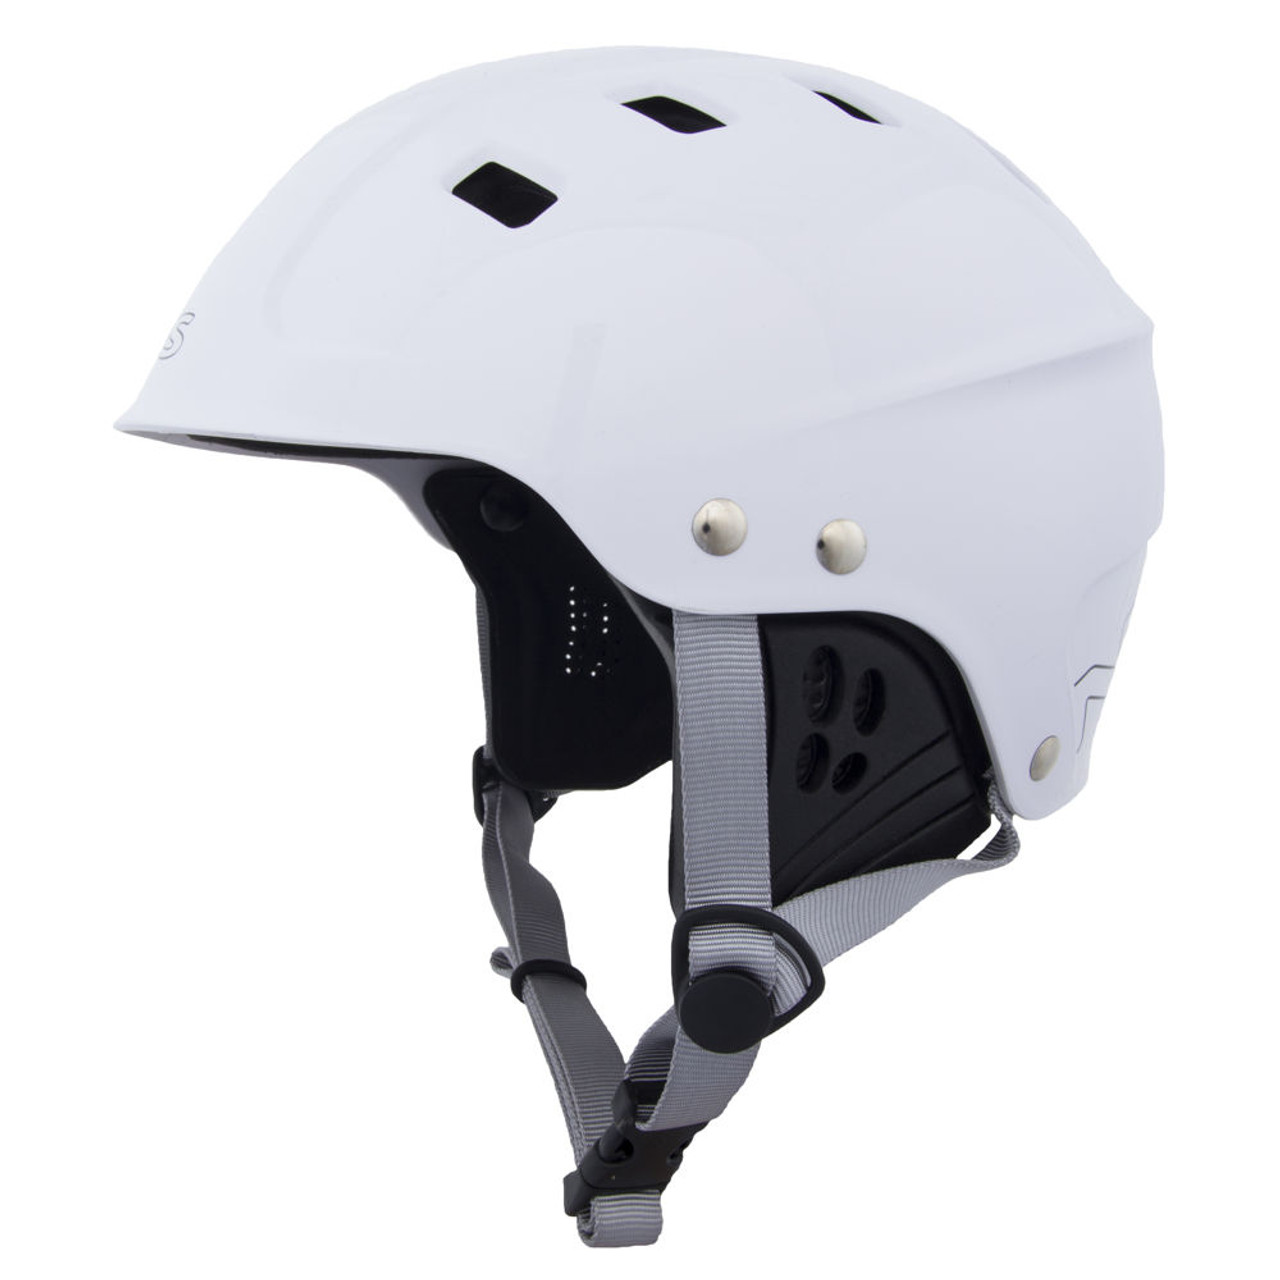 NRS Chaos Helmet - Side Cut Kayaking Rescue Helmet